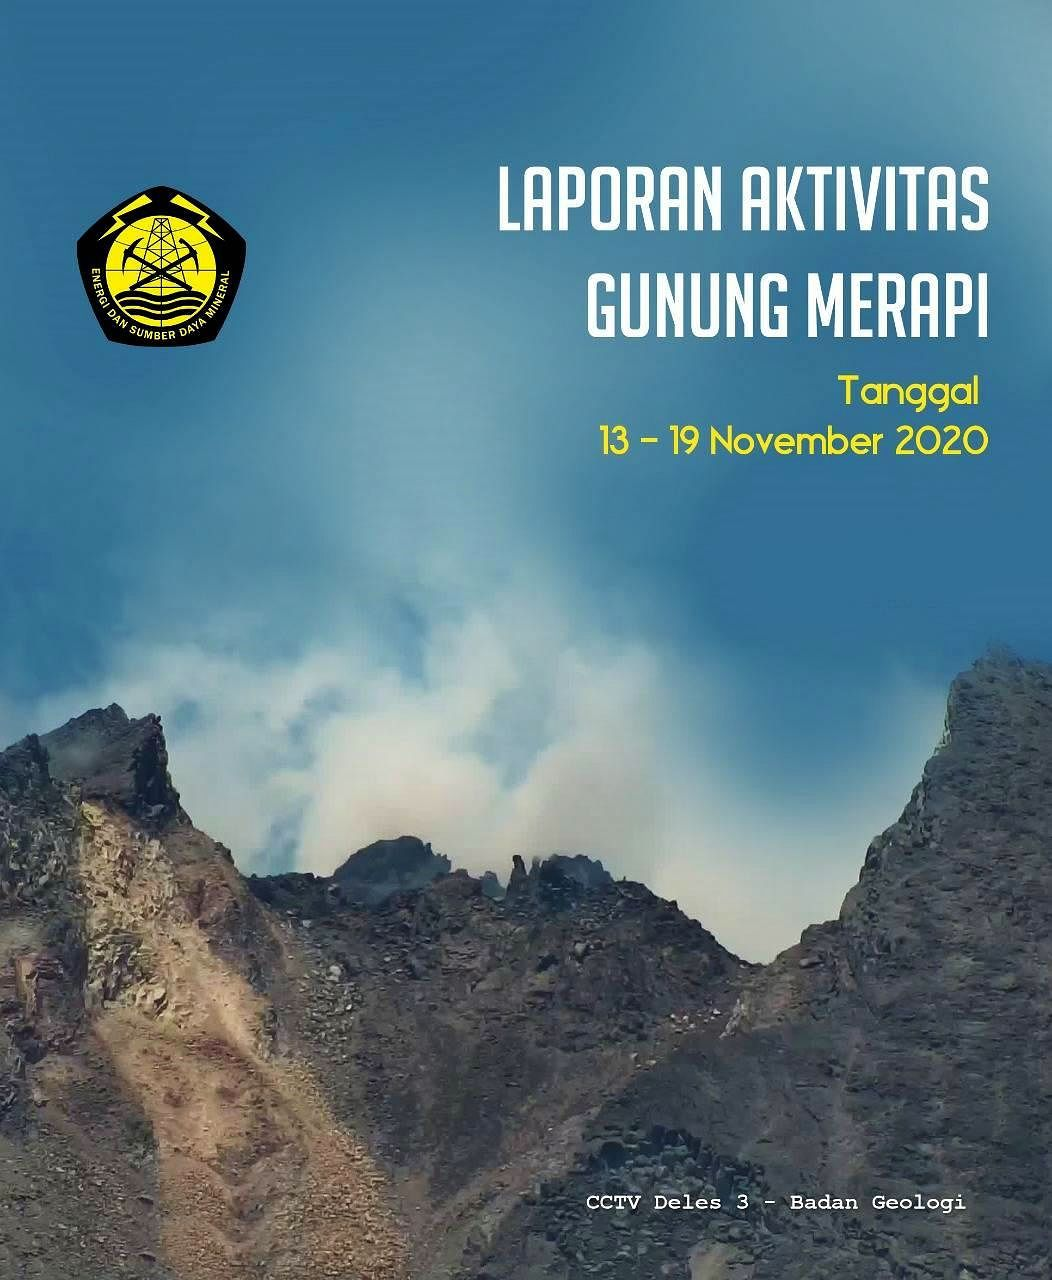 Merapi activity between November 13 and 19, according to BPPTKG report